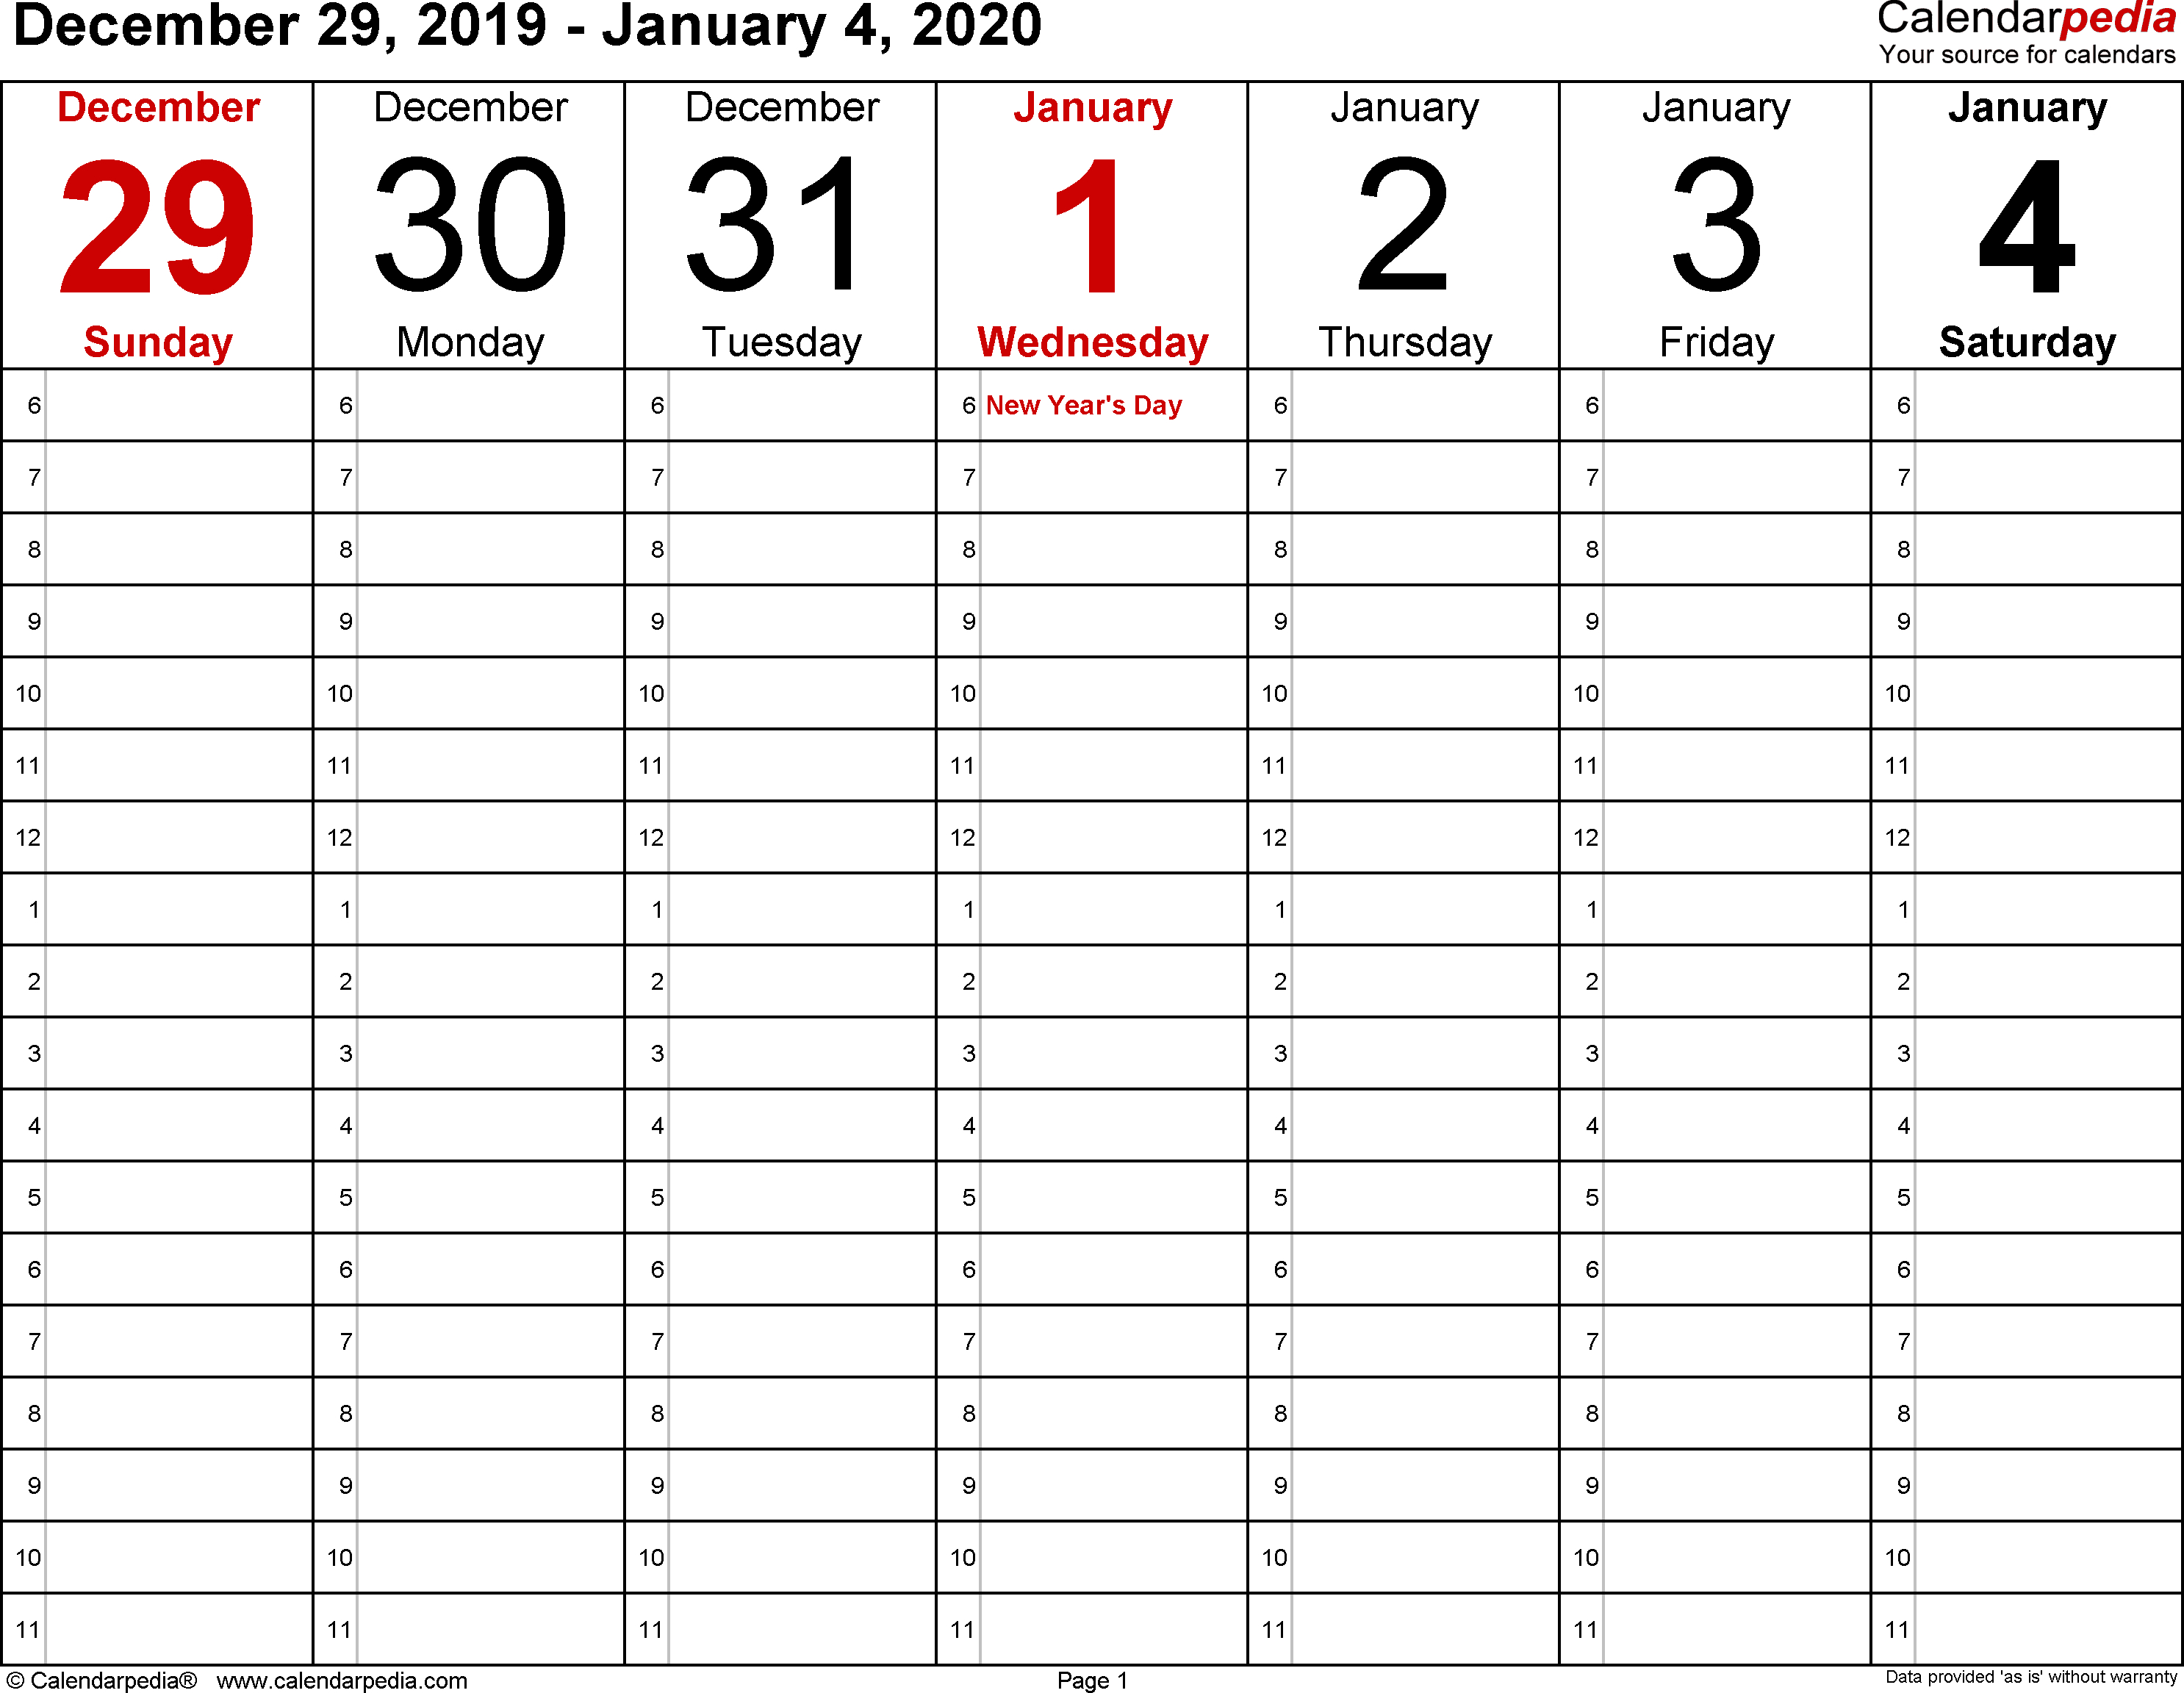 Weekly Calendar 2020 For Word - 12 Free Printable Templates for 2020 Calander To Write On